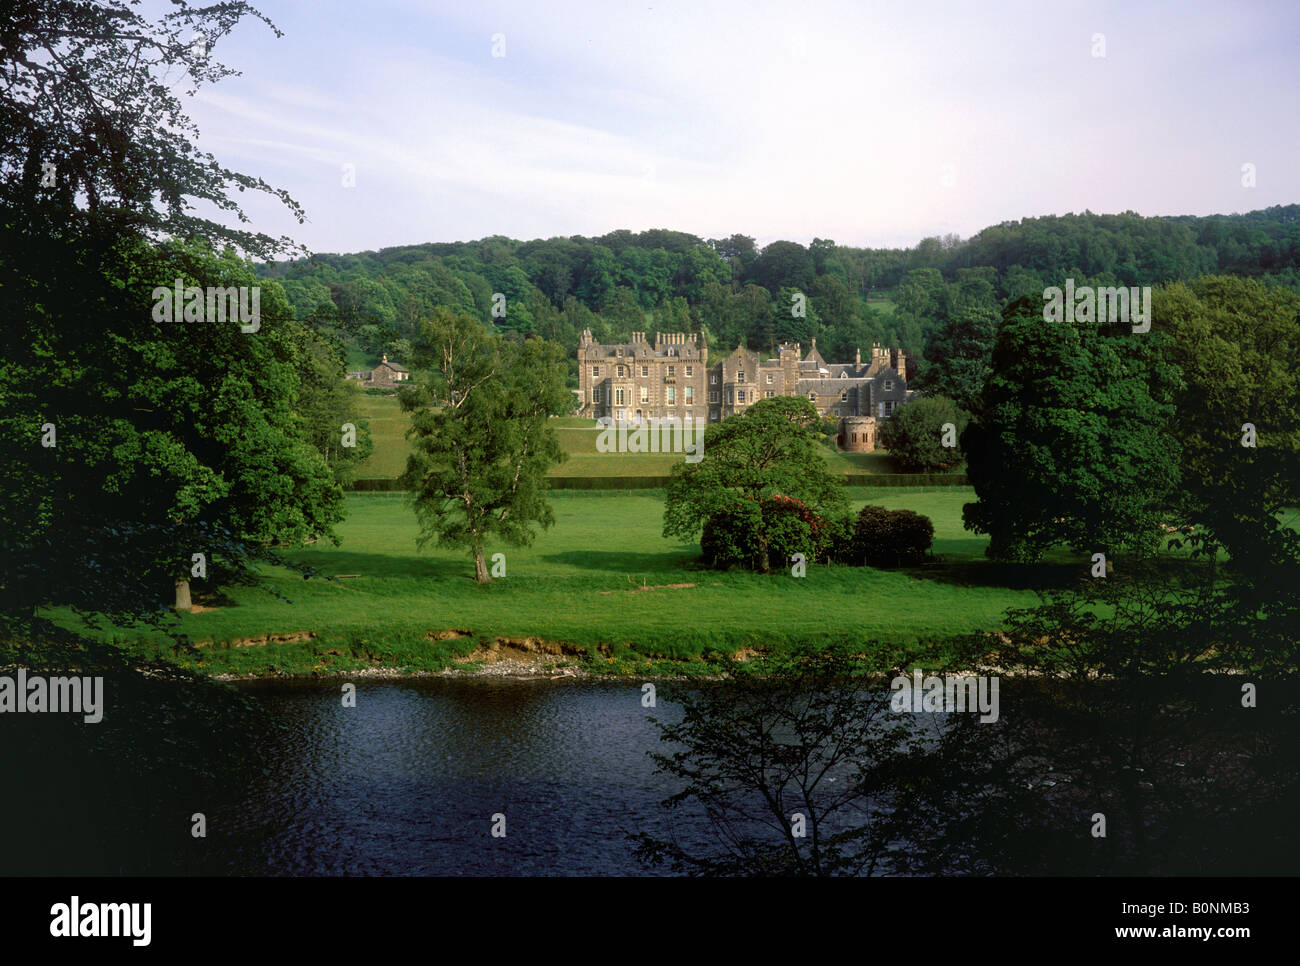 Melrose - Abbotsford House, home of Sir Walter Scott on the River Tweed - Stock Image